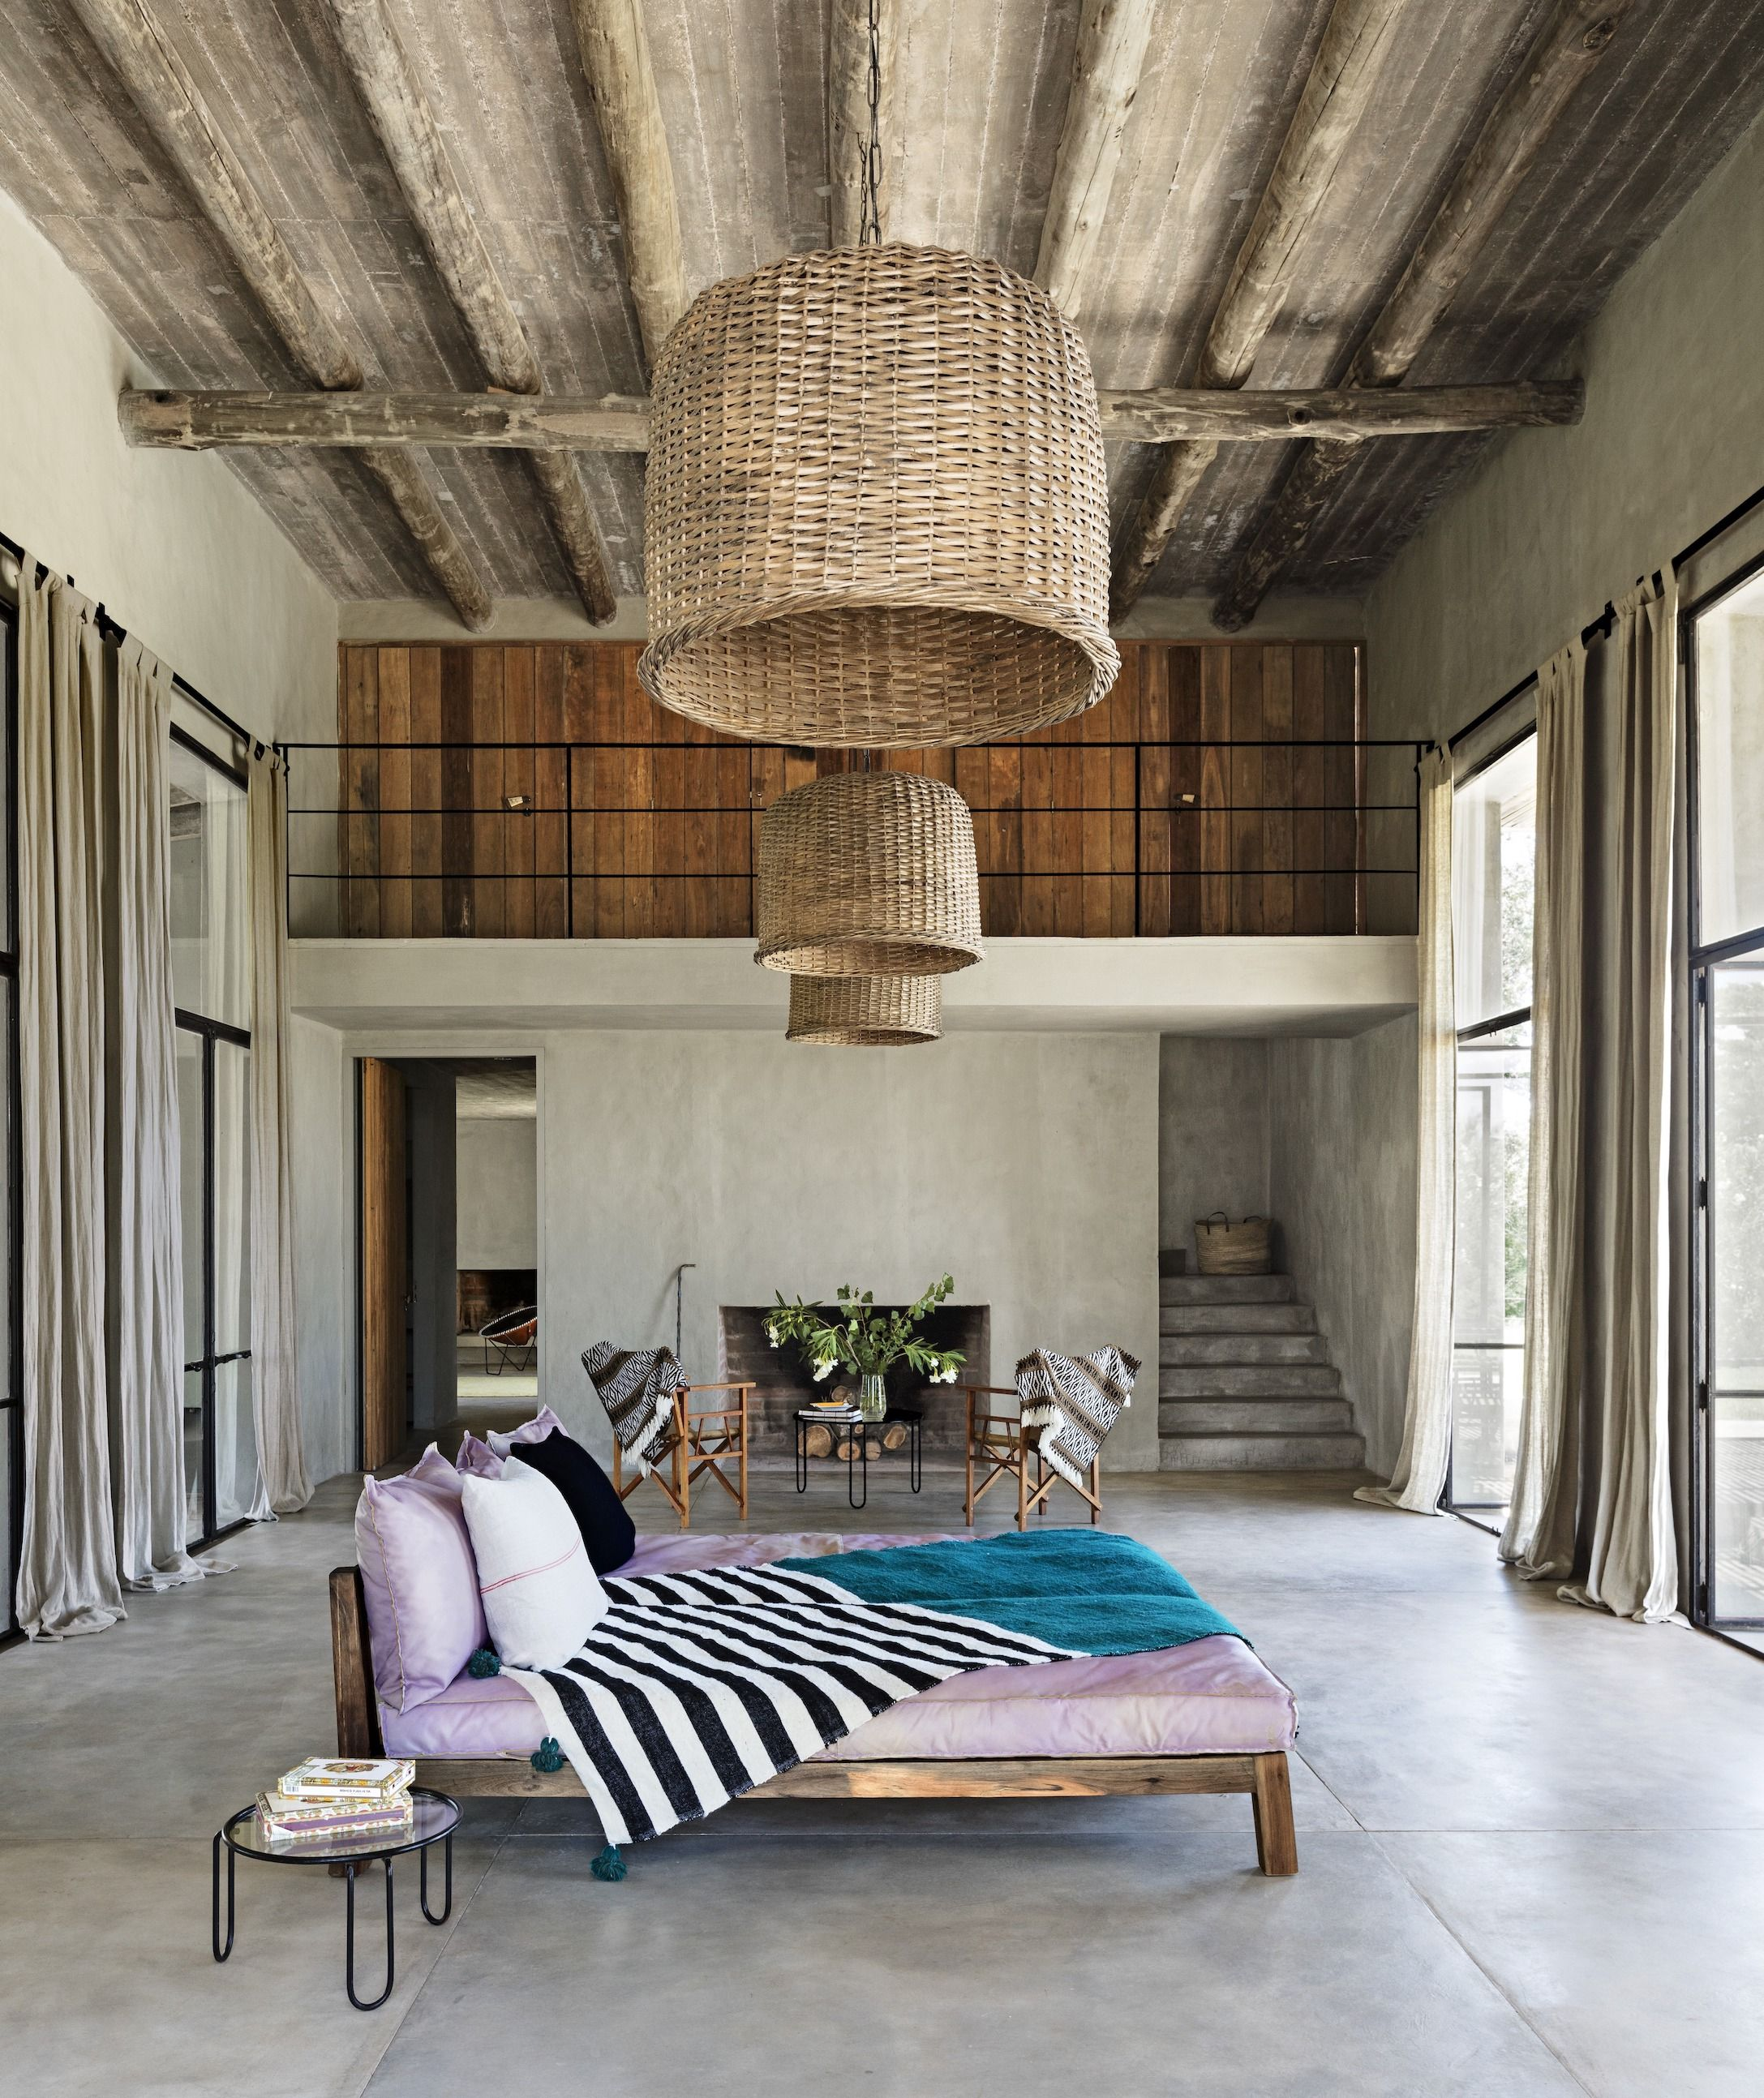 Uruguay Vacation Home Tour